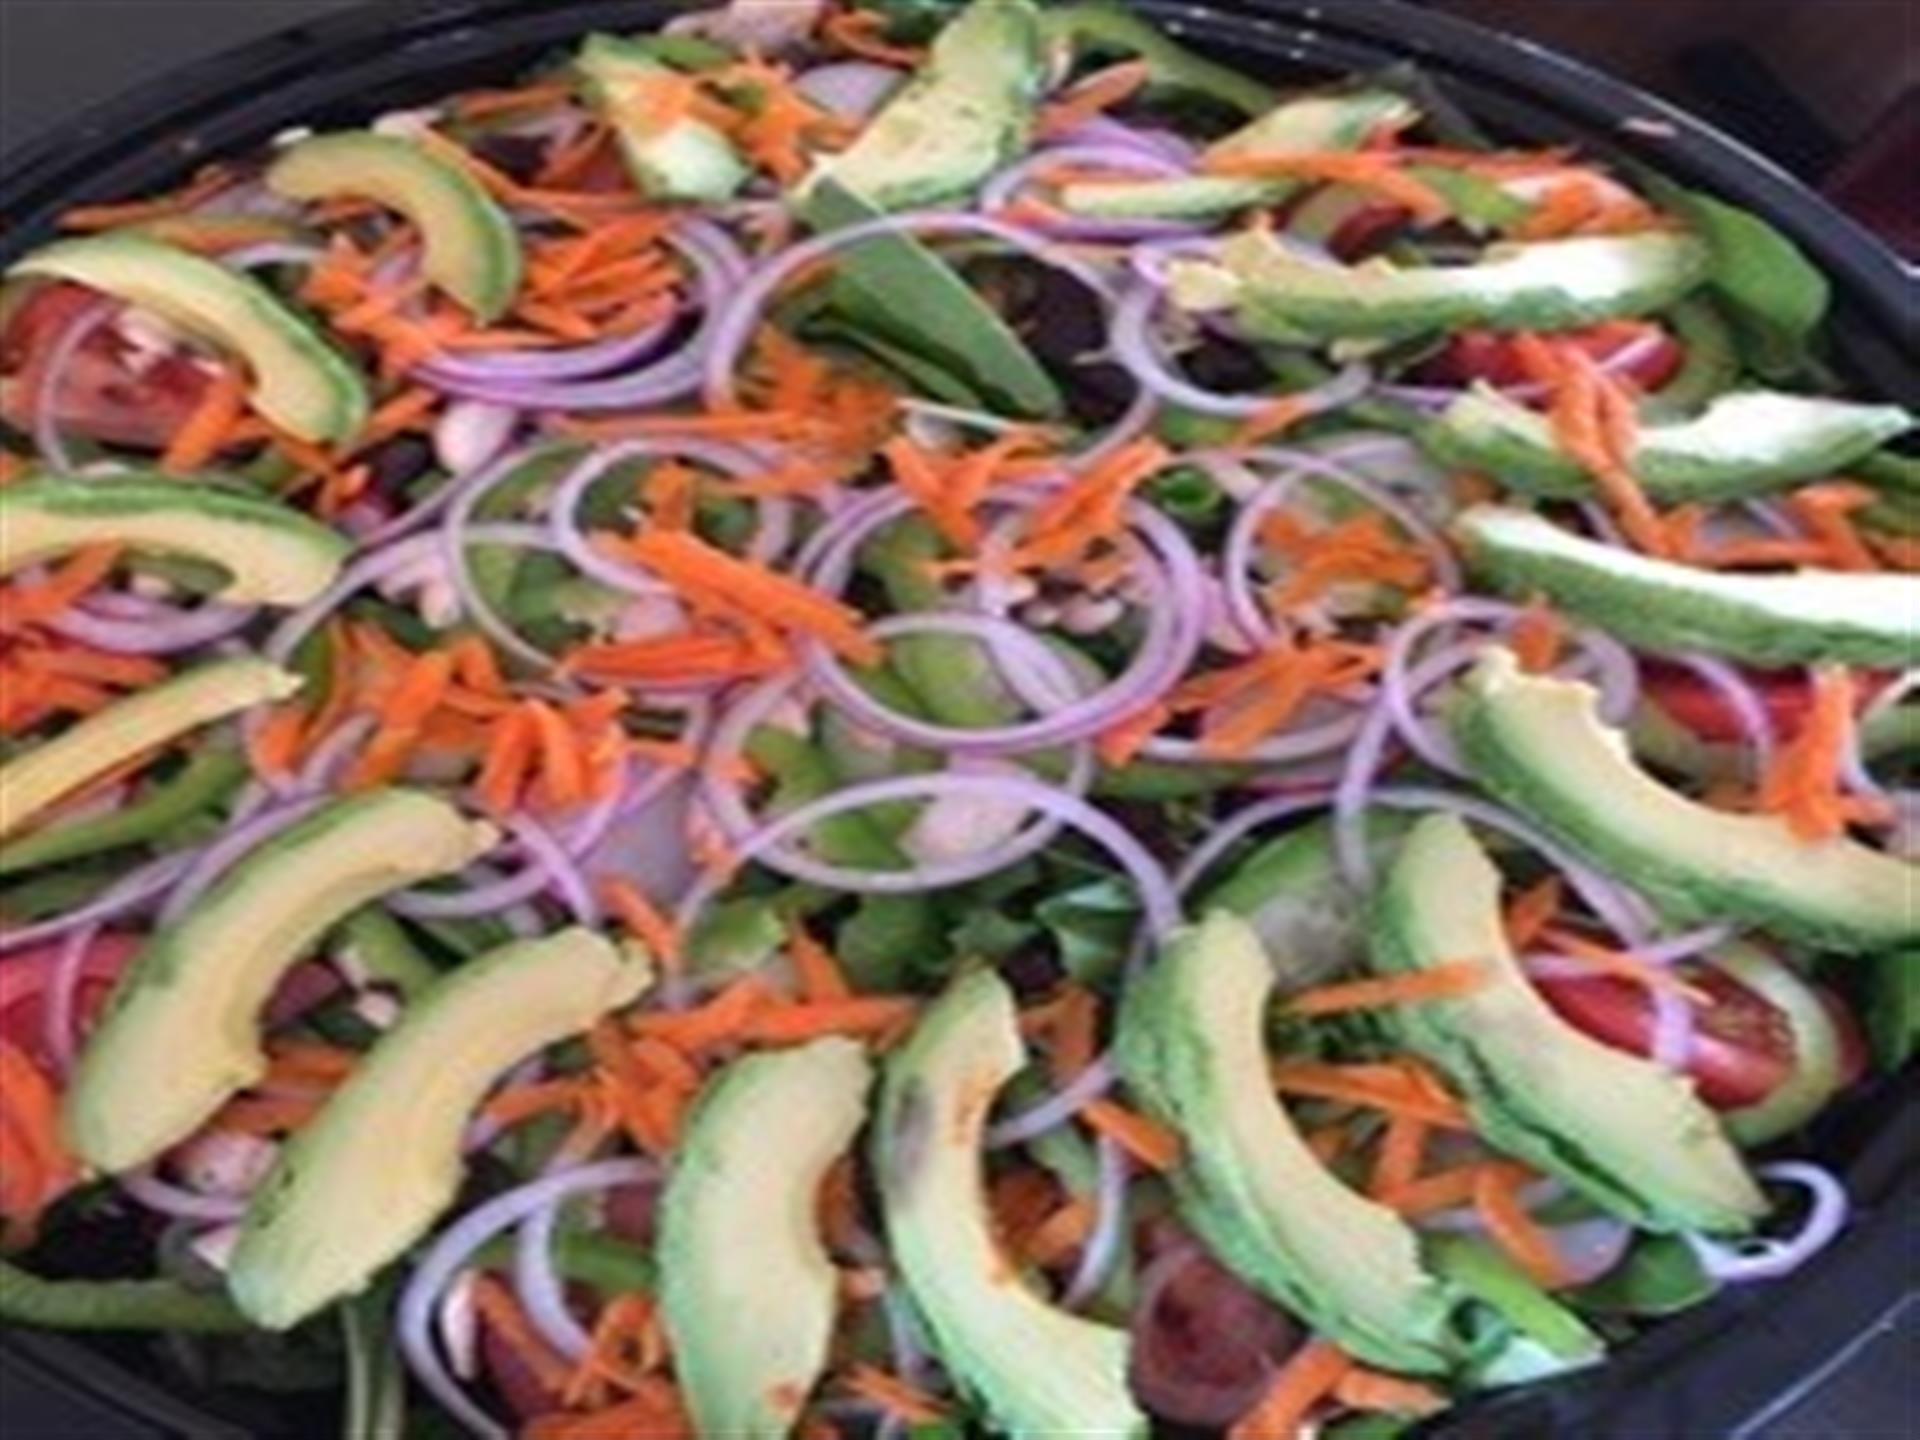 Closeup of salad in bowl.